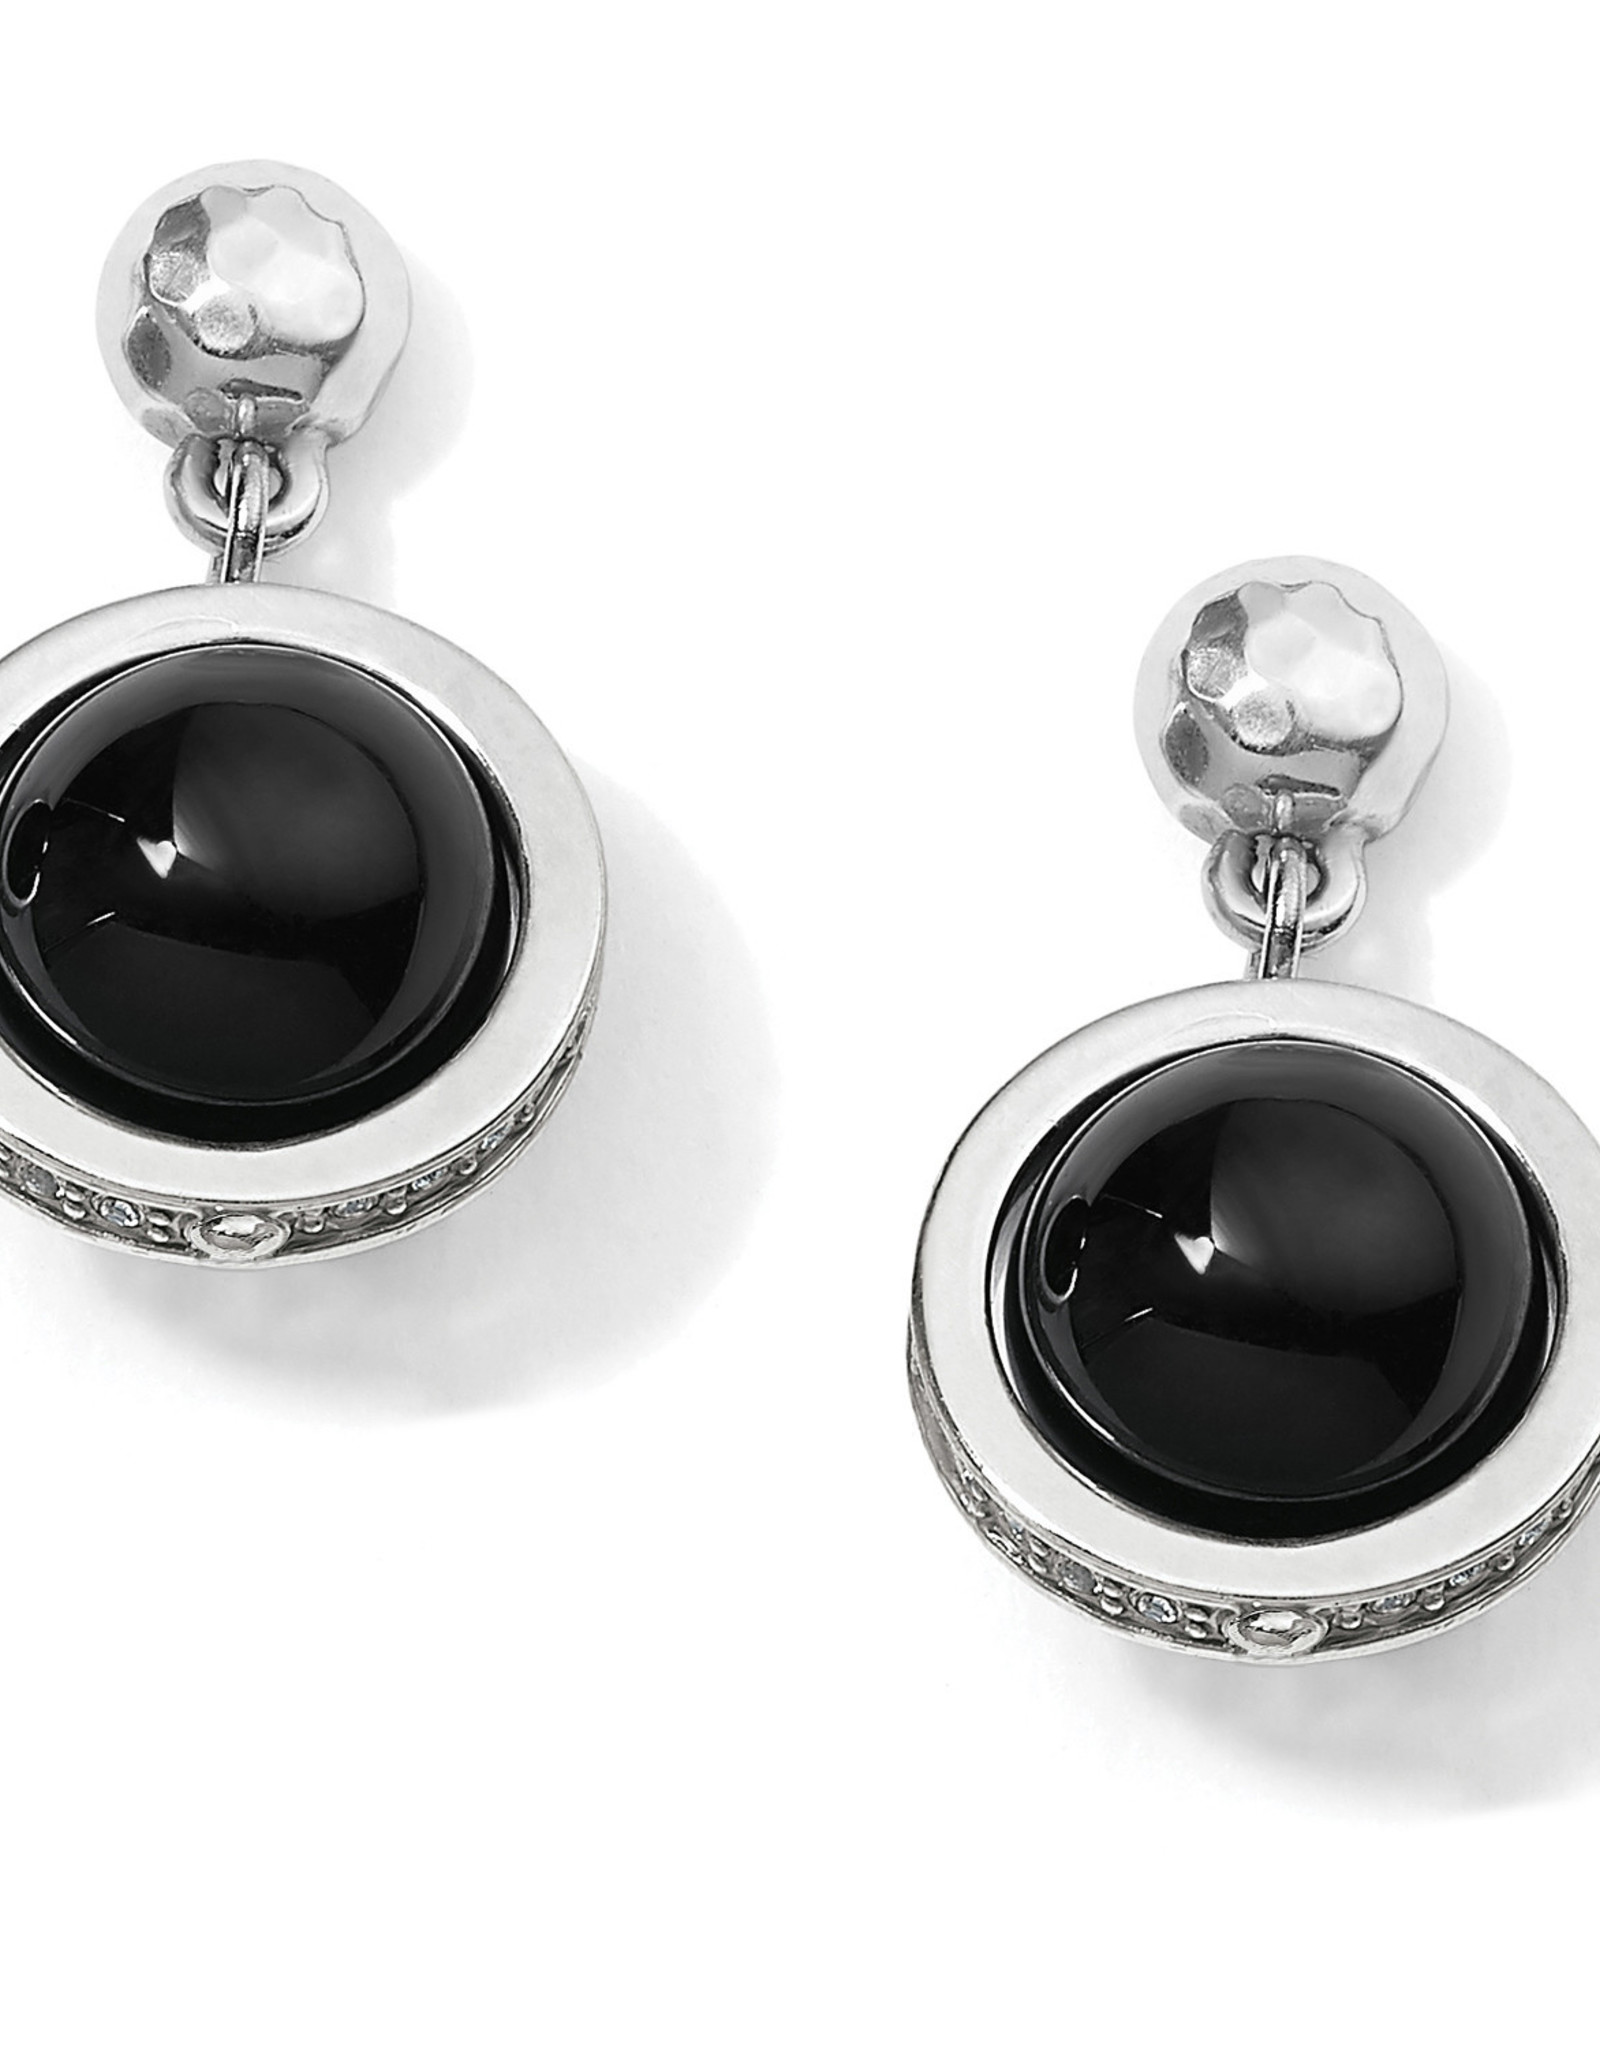 Brighton Brighton Earrings Chara Ellipse Spin Post Drop-Black